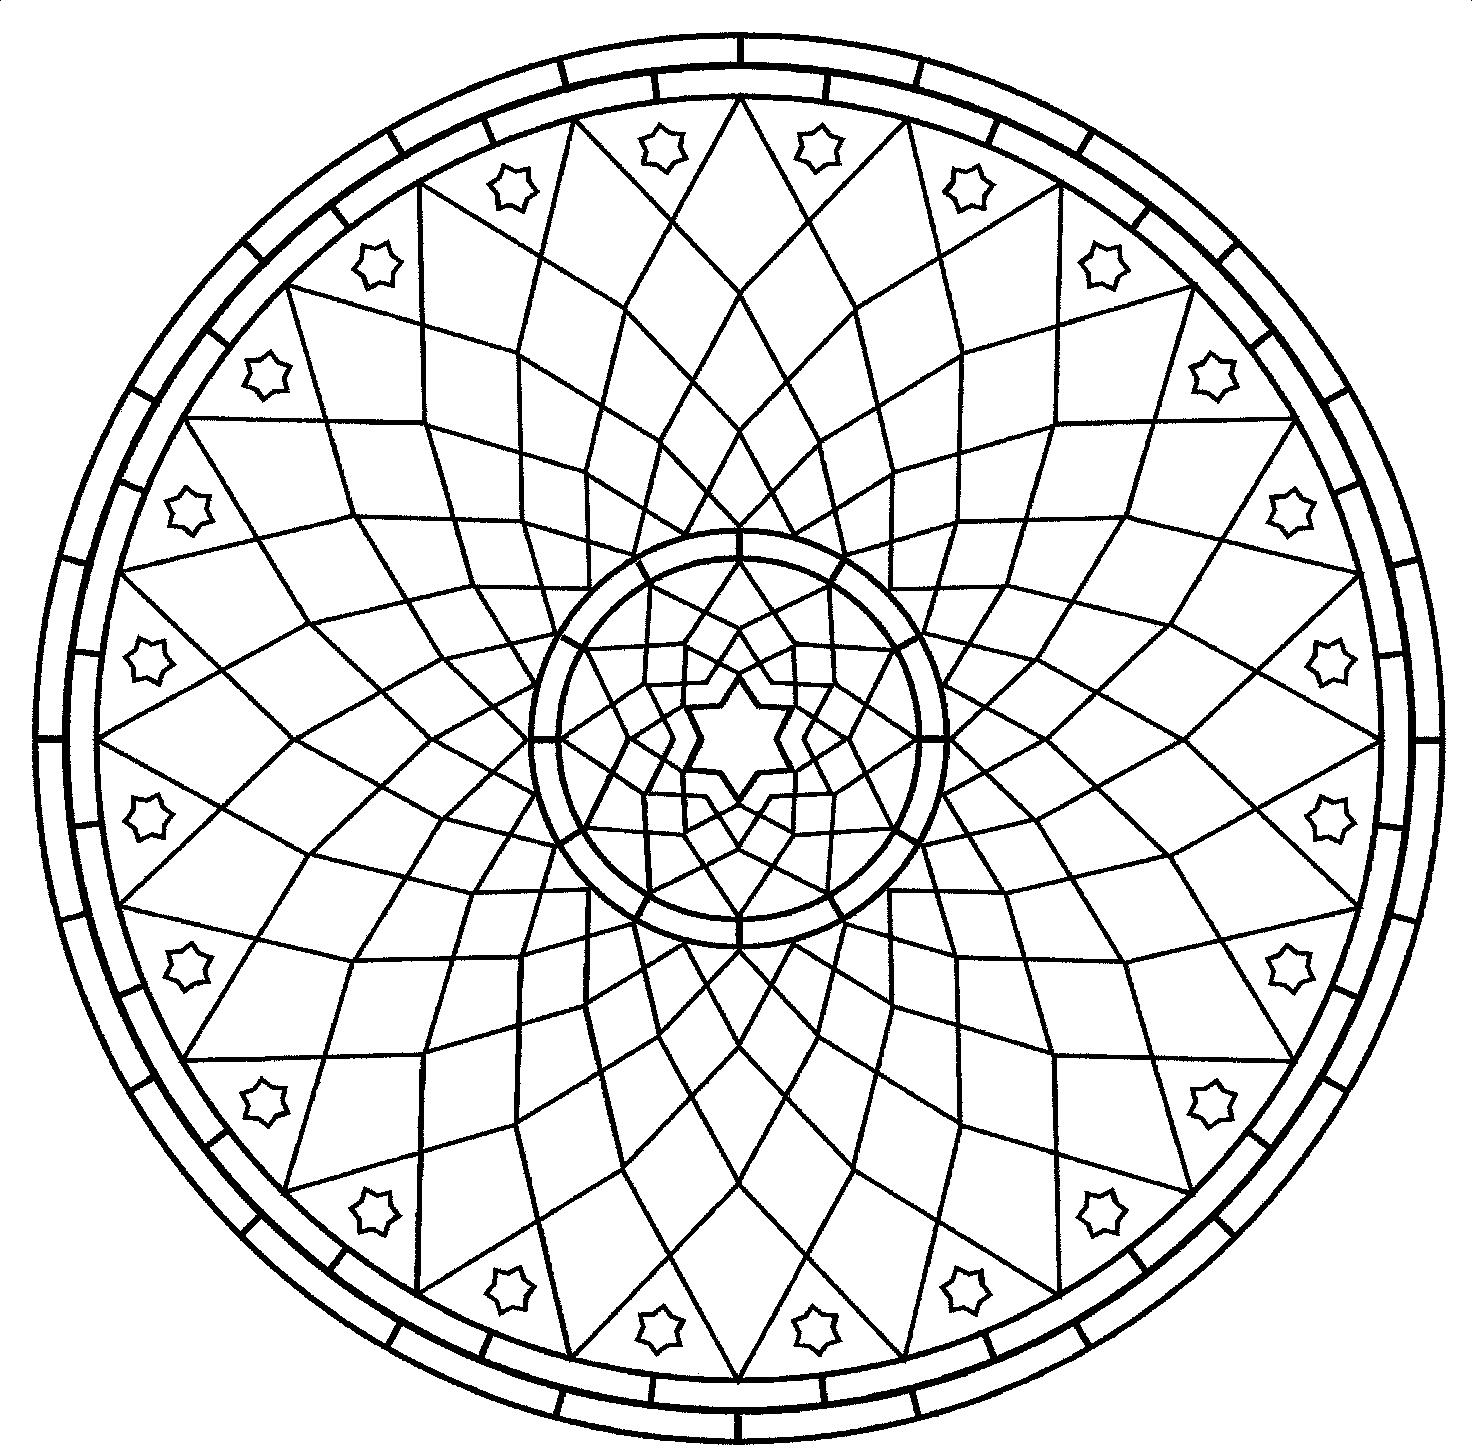 Mandala Coloring Pages Free Printable Pictures Coloring Pages For Kids